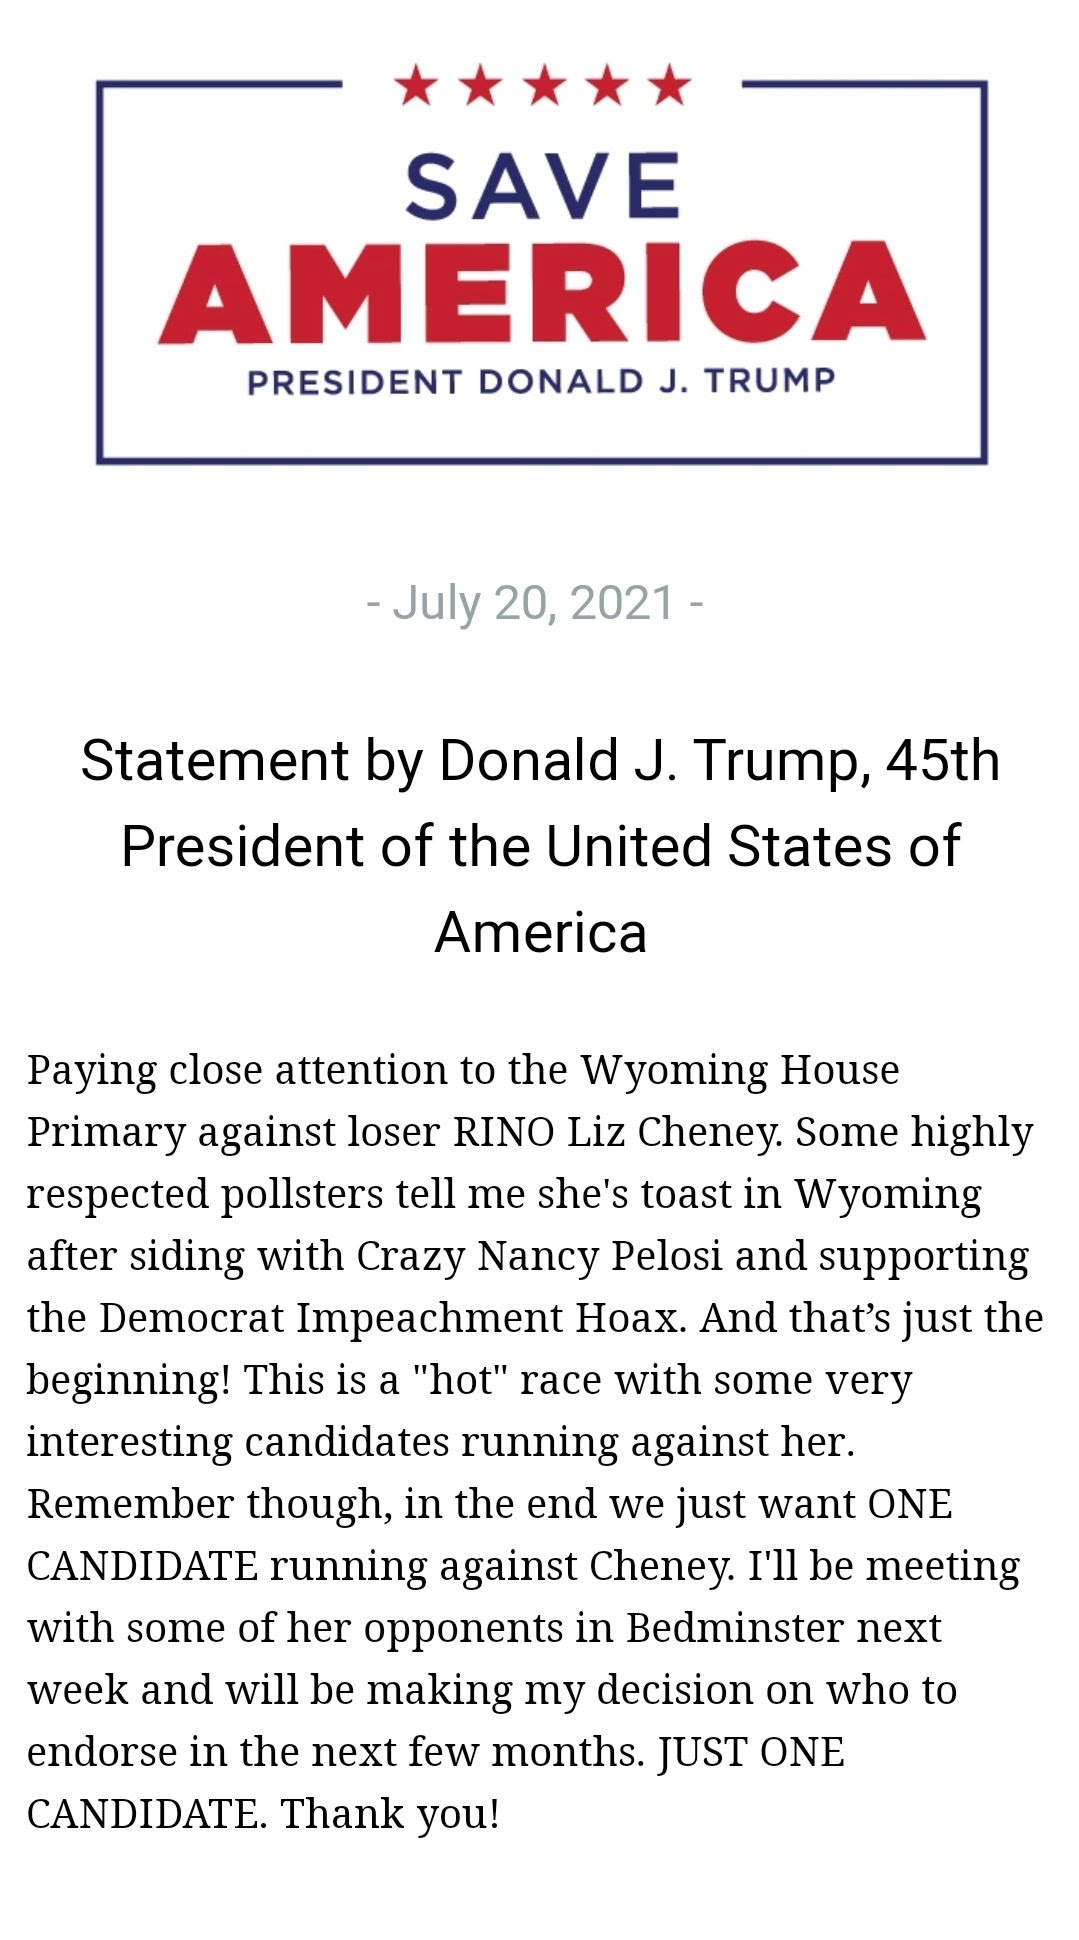 https://theconservativetreehouse.com/wp-content/uploads/2021/07/Trump-one-candidate-for-Wyoming.jpg